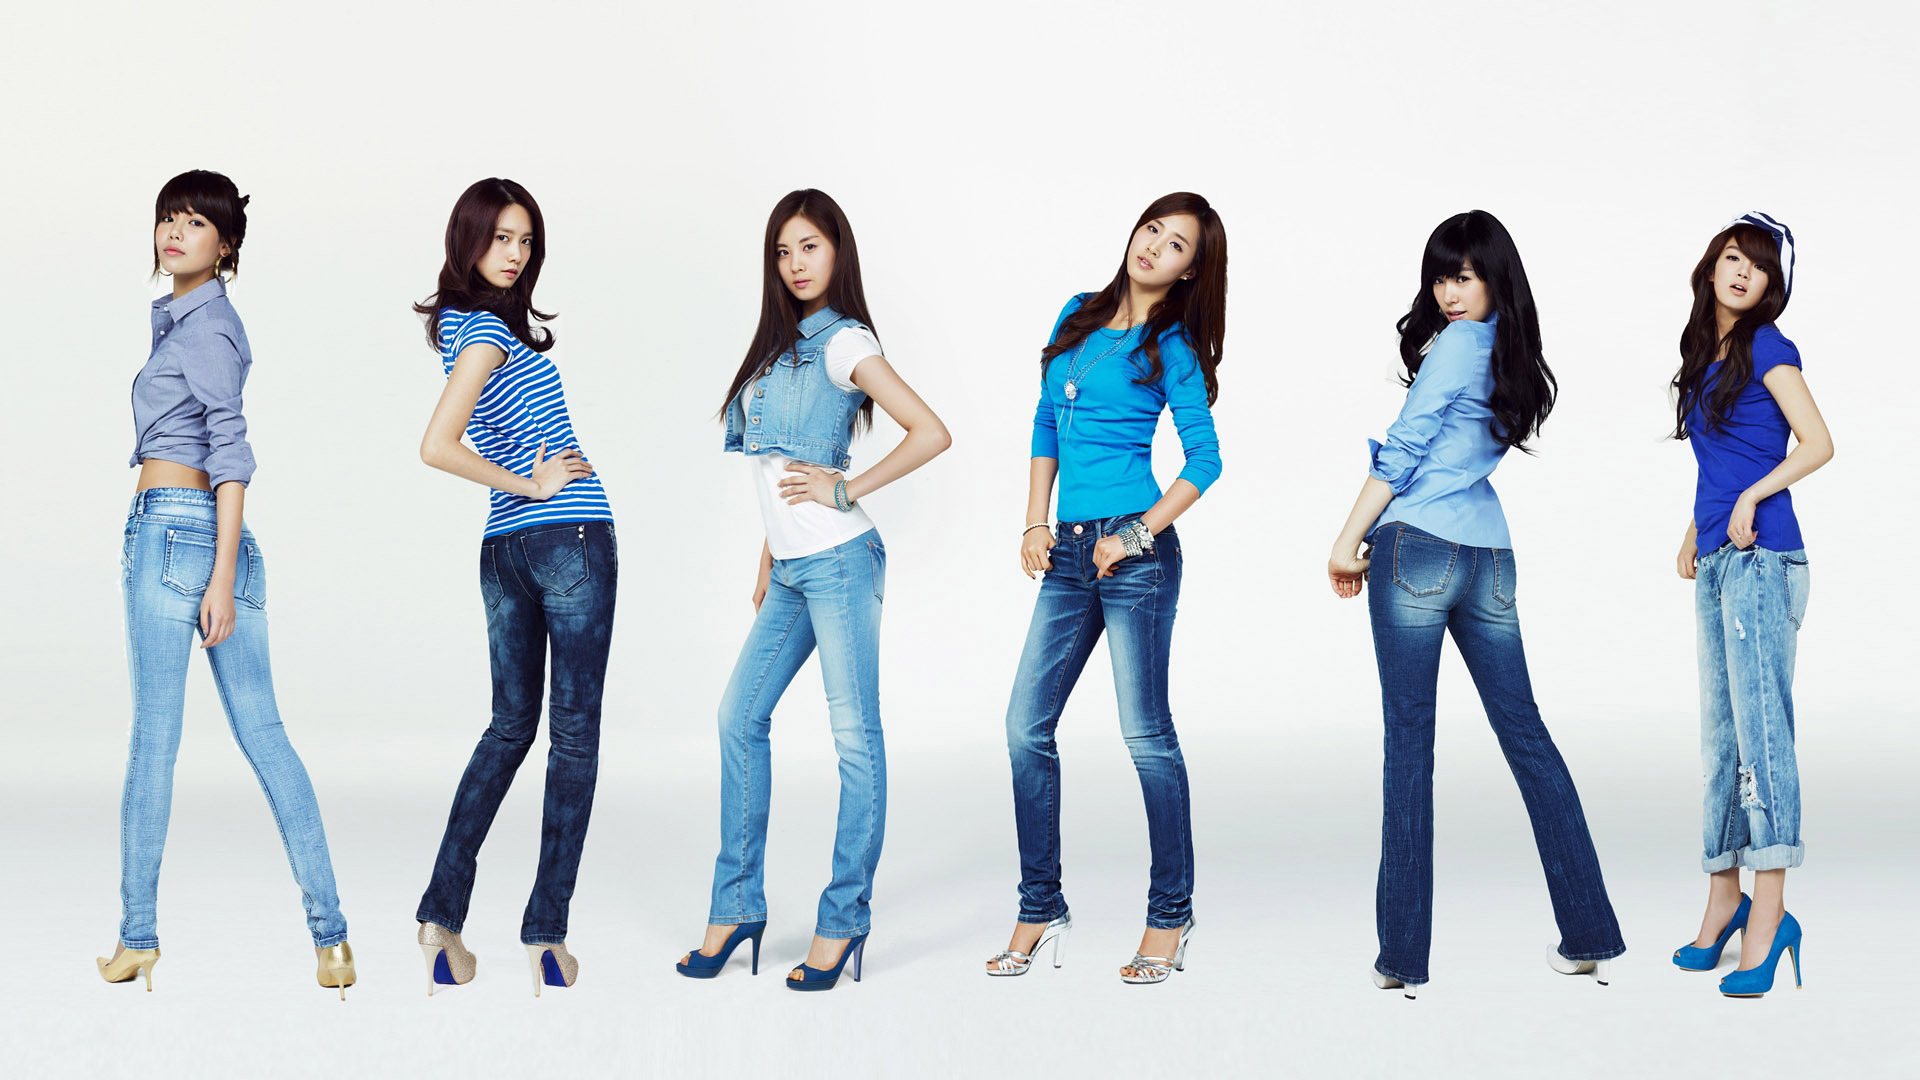 Invincible Youth Images Afterschool HD Wallpaper And Background Photos